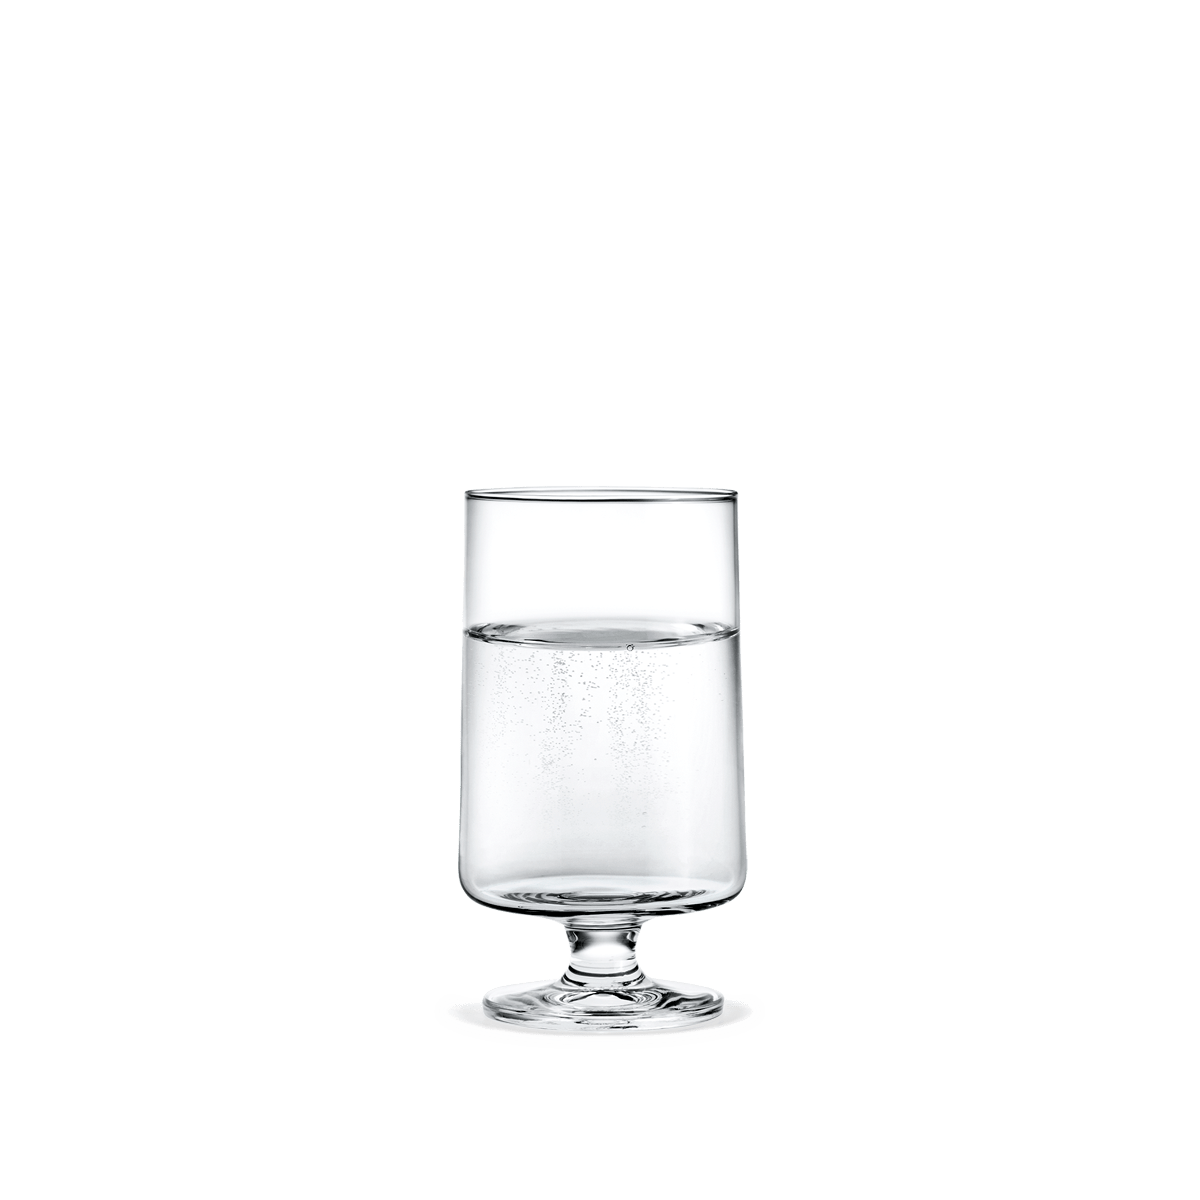 NORMODE Glassware Holmegaard Stub Glass, 12.2 oz, 2 Pcs.